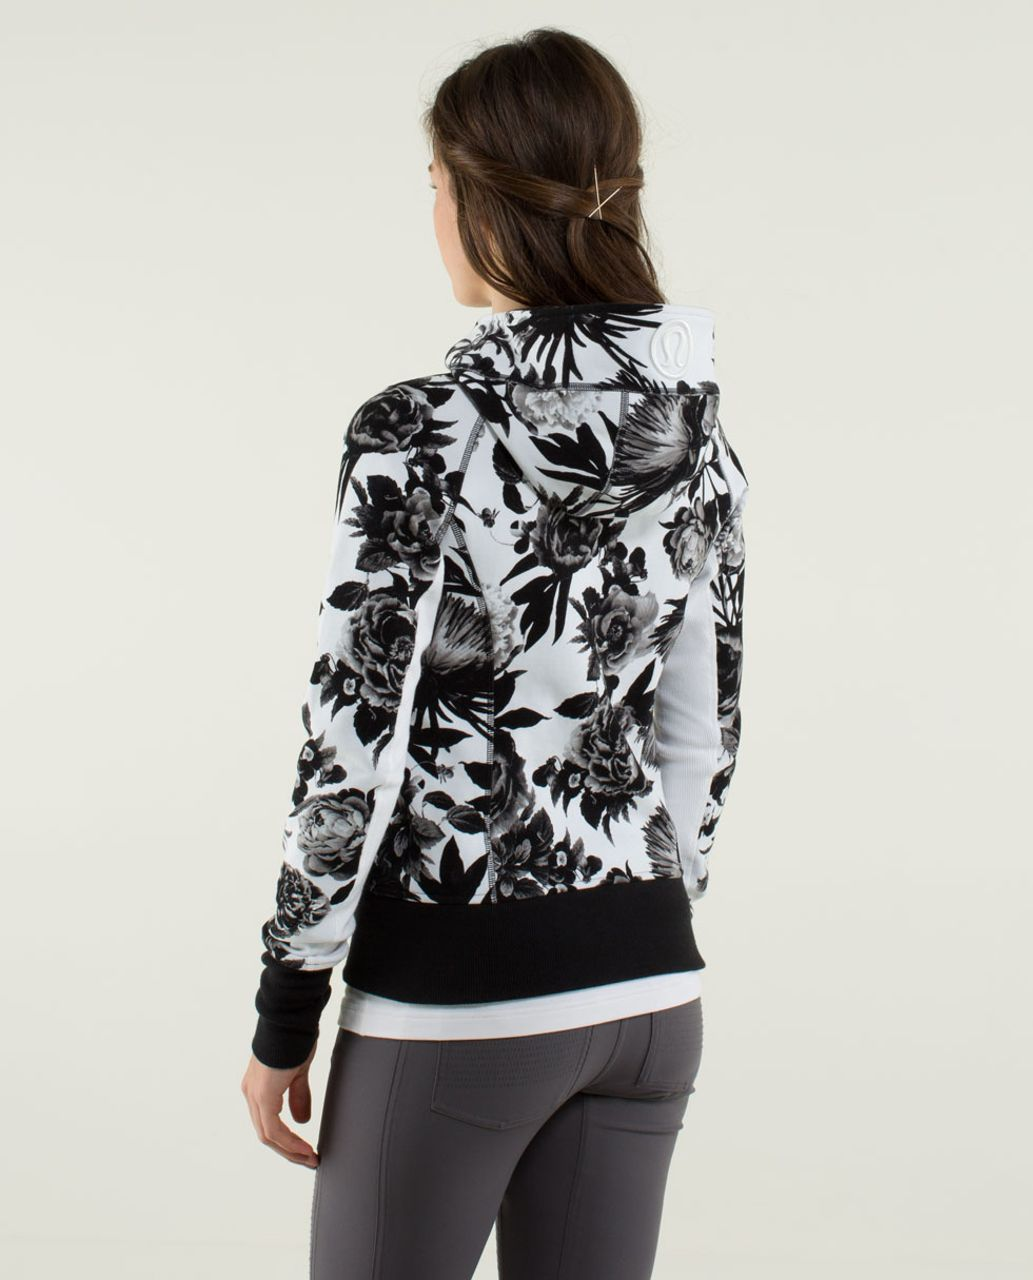 Lululemon Scuba Hoodie *Stretch (Lined Hood) - Brisk Bloom Black White / White / Black / White